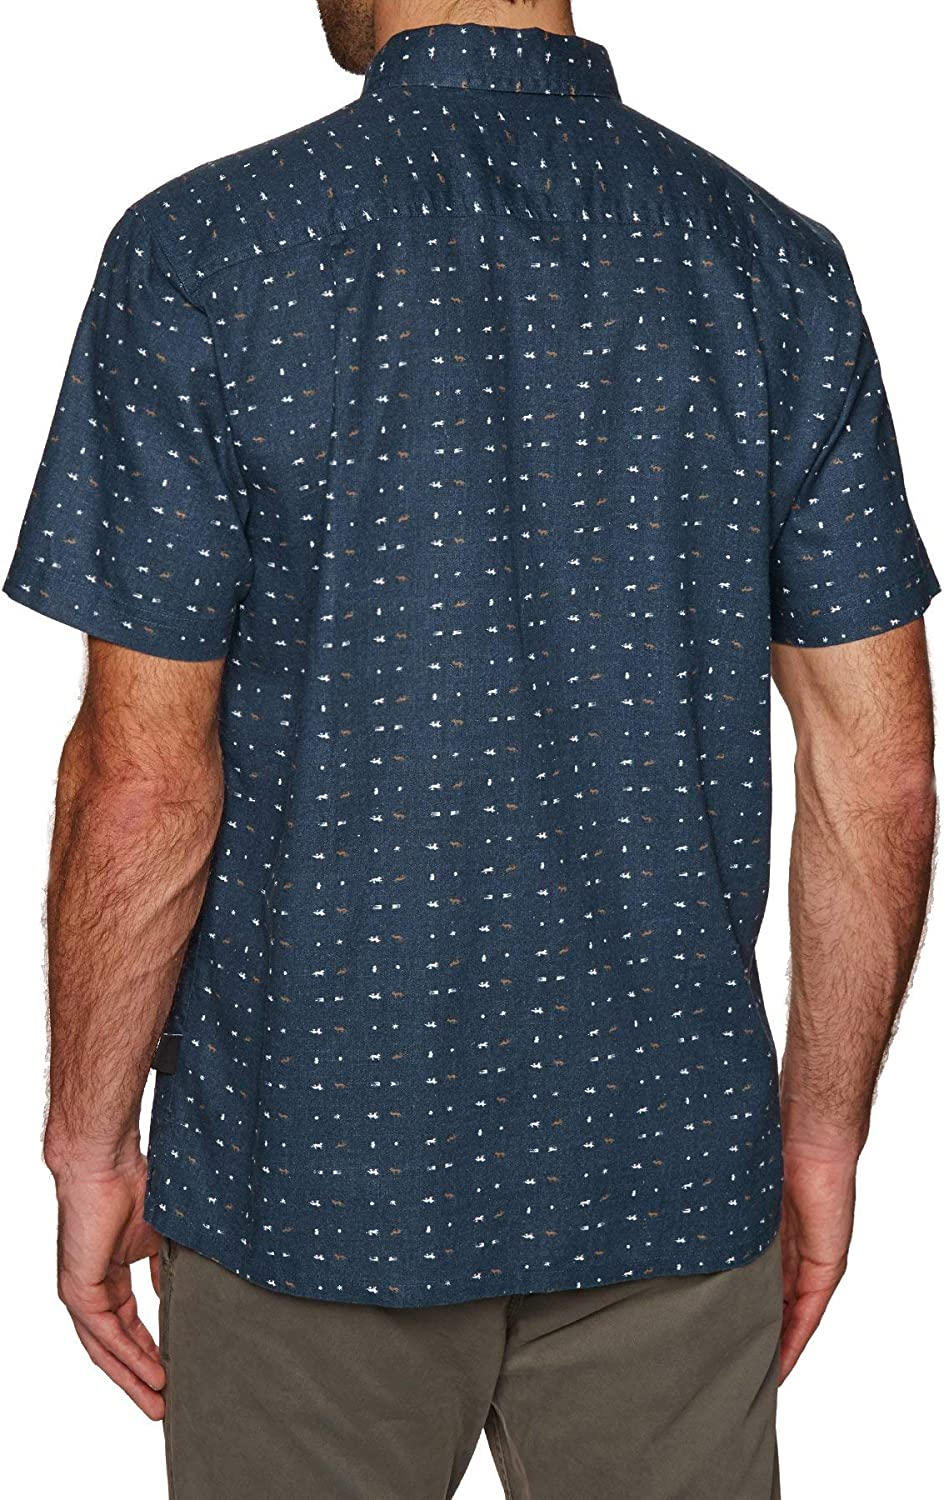 Patagonia Men's M's Back Step Shirt Short Sleeves Top Stone Blue